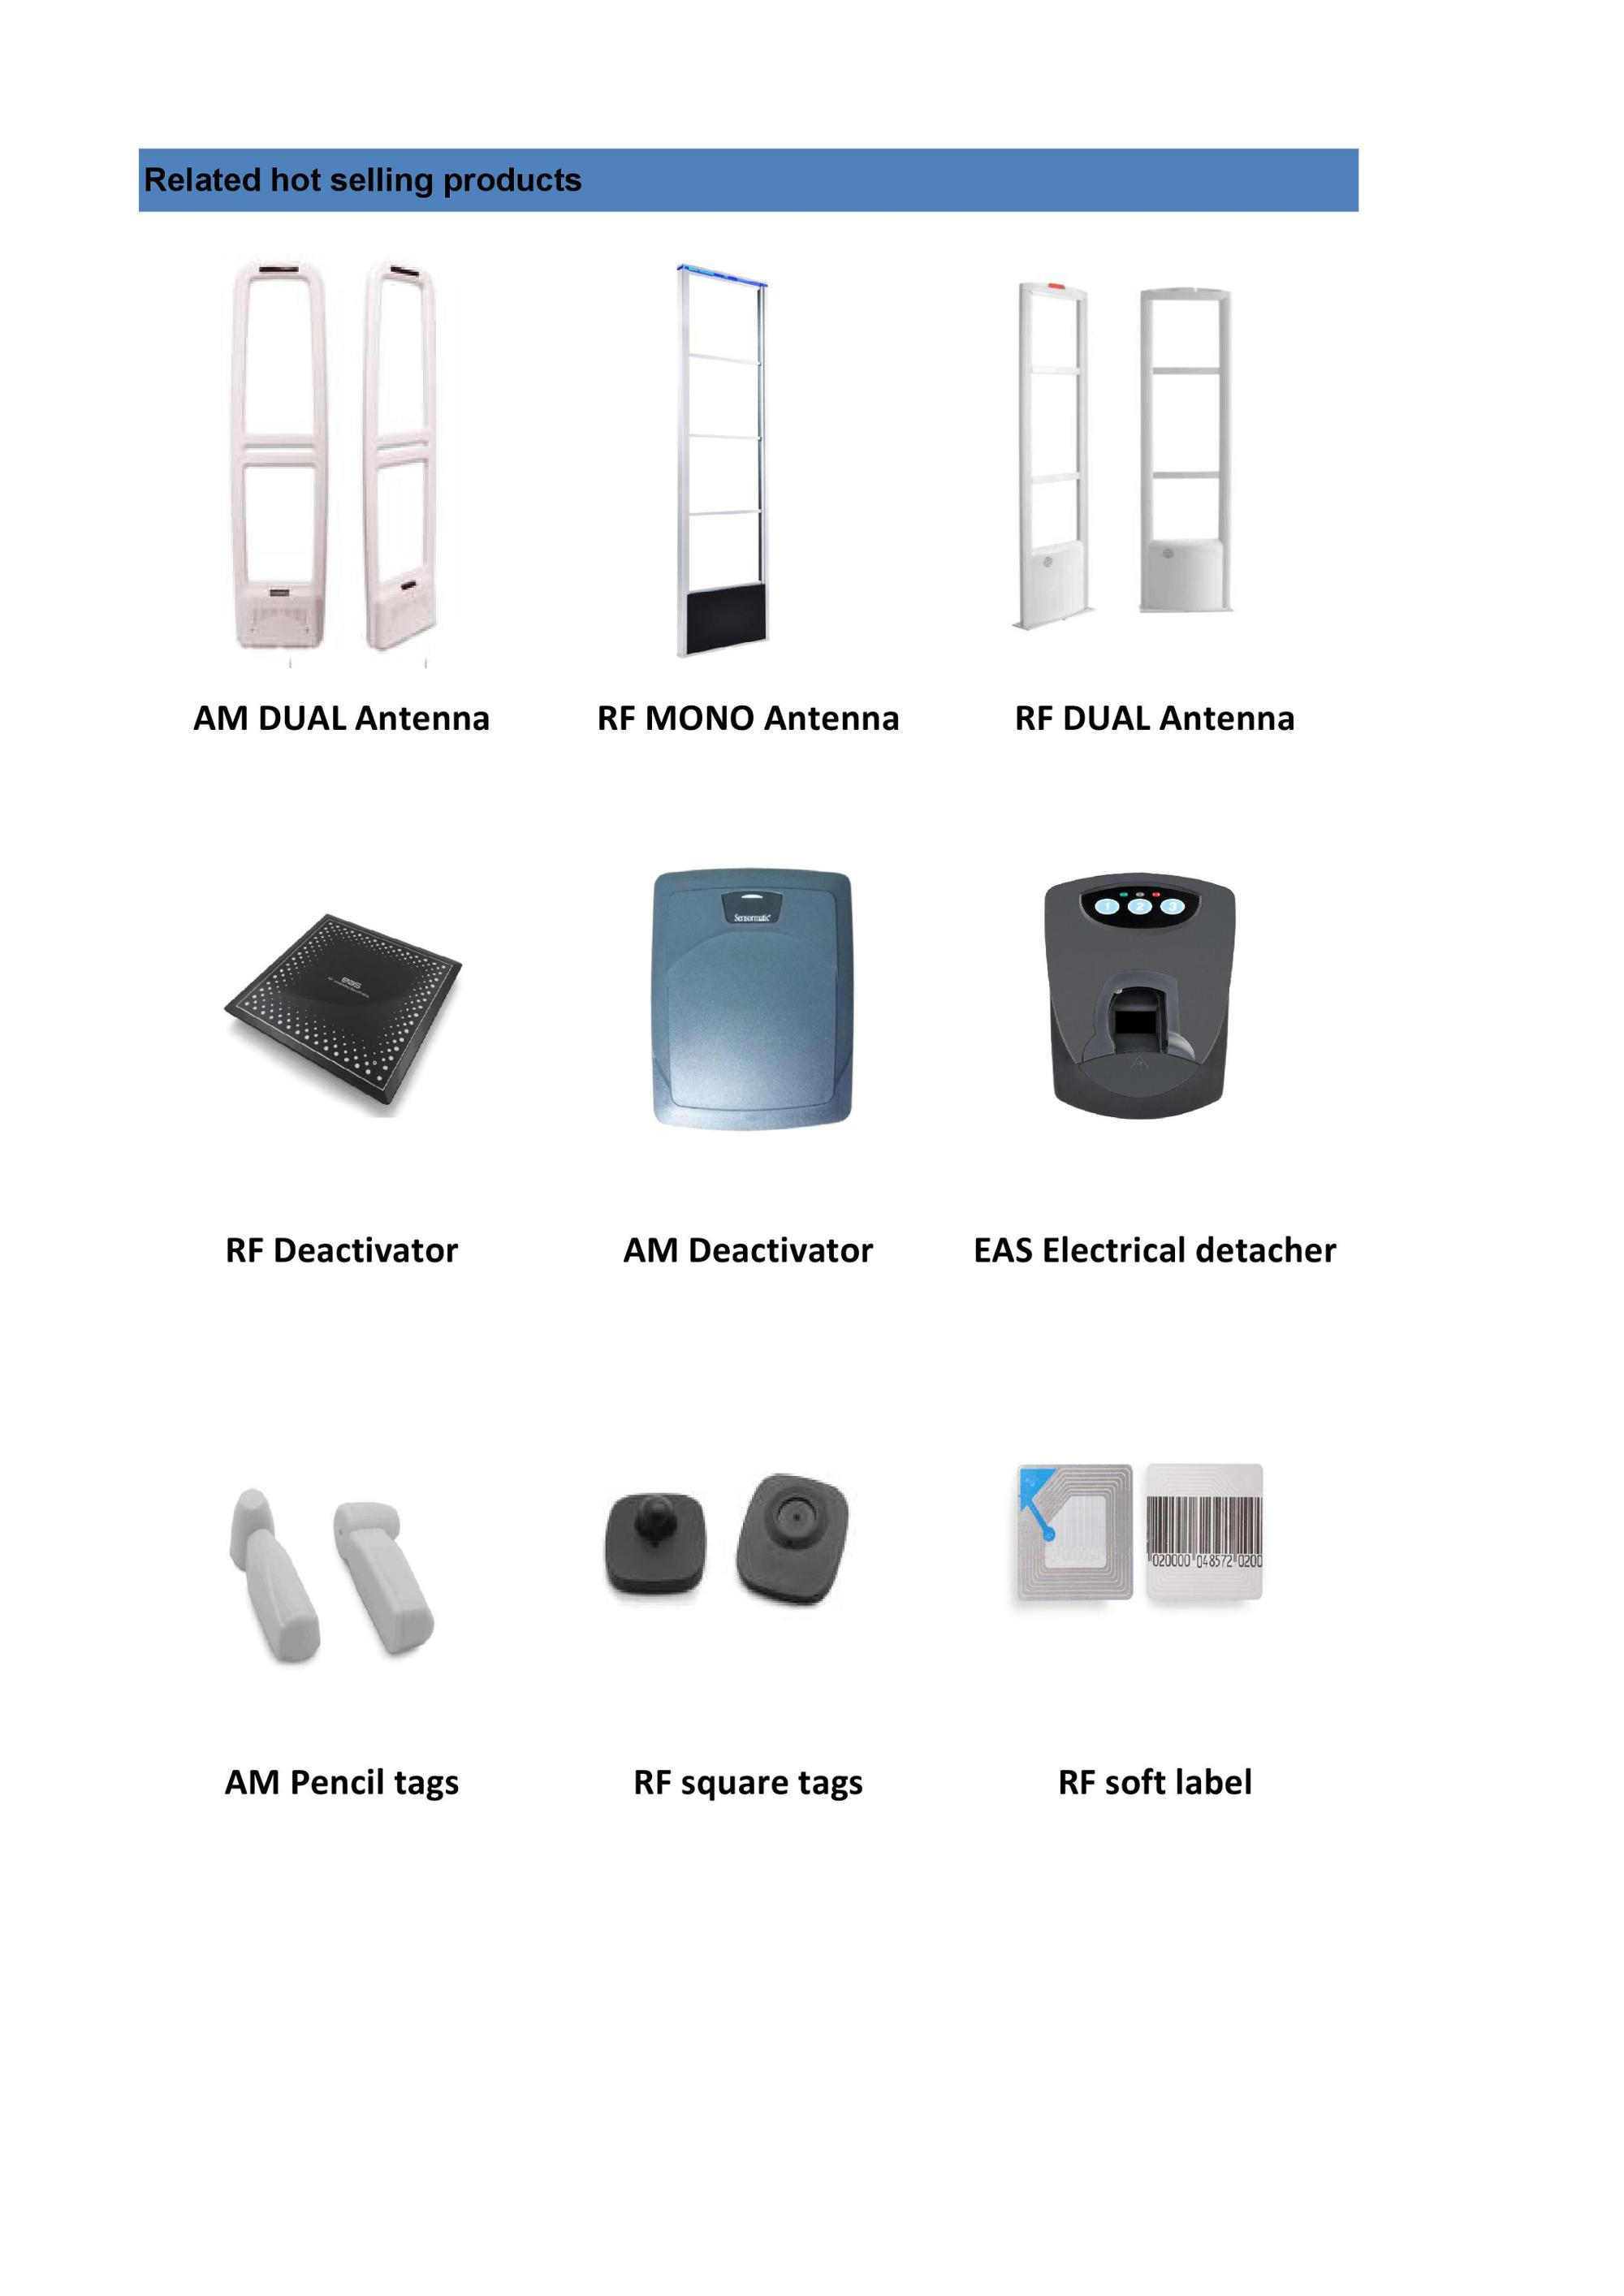 Hot Selling Magnetic Locking Security Alarm System Anti Theft System  Tagging System For Retail Security - Buy Security Alarm System Anti Theft  System